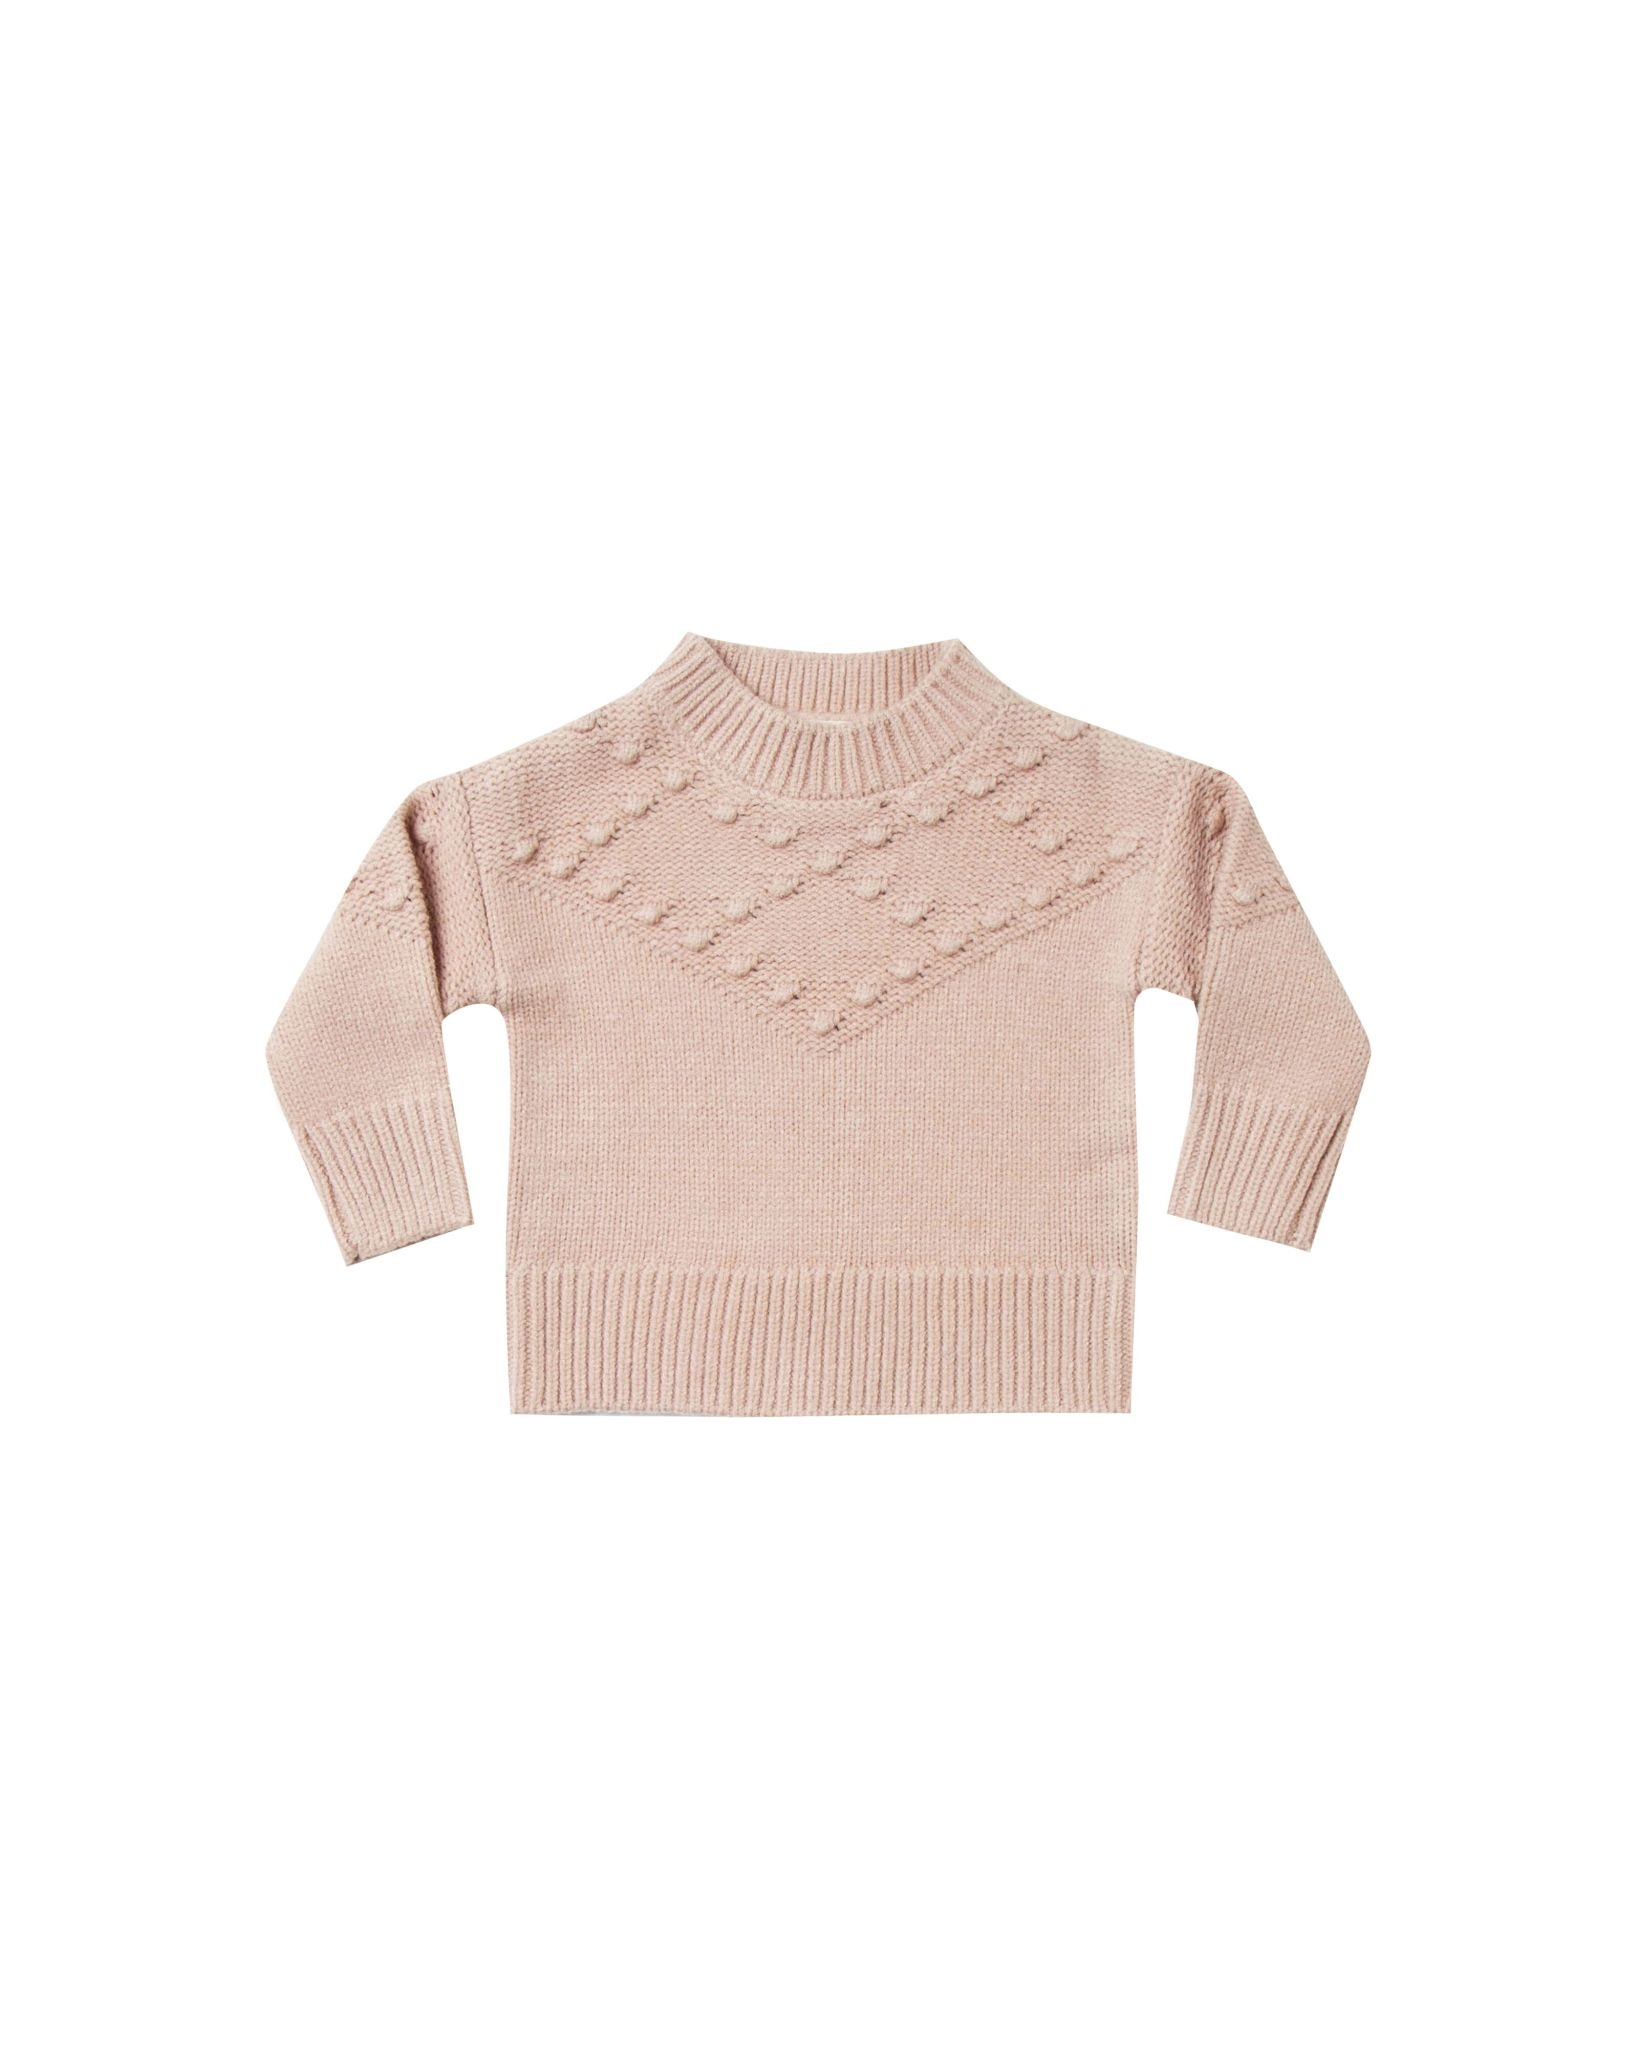 RYLEE AND CRU Bobble Baby Sweater